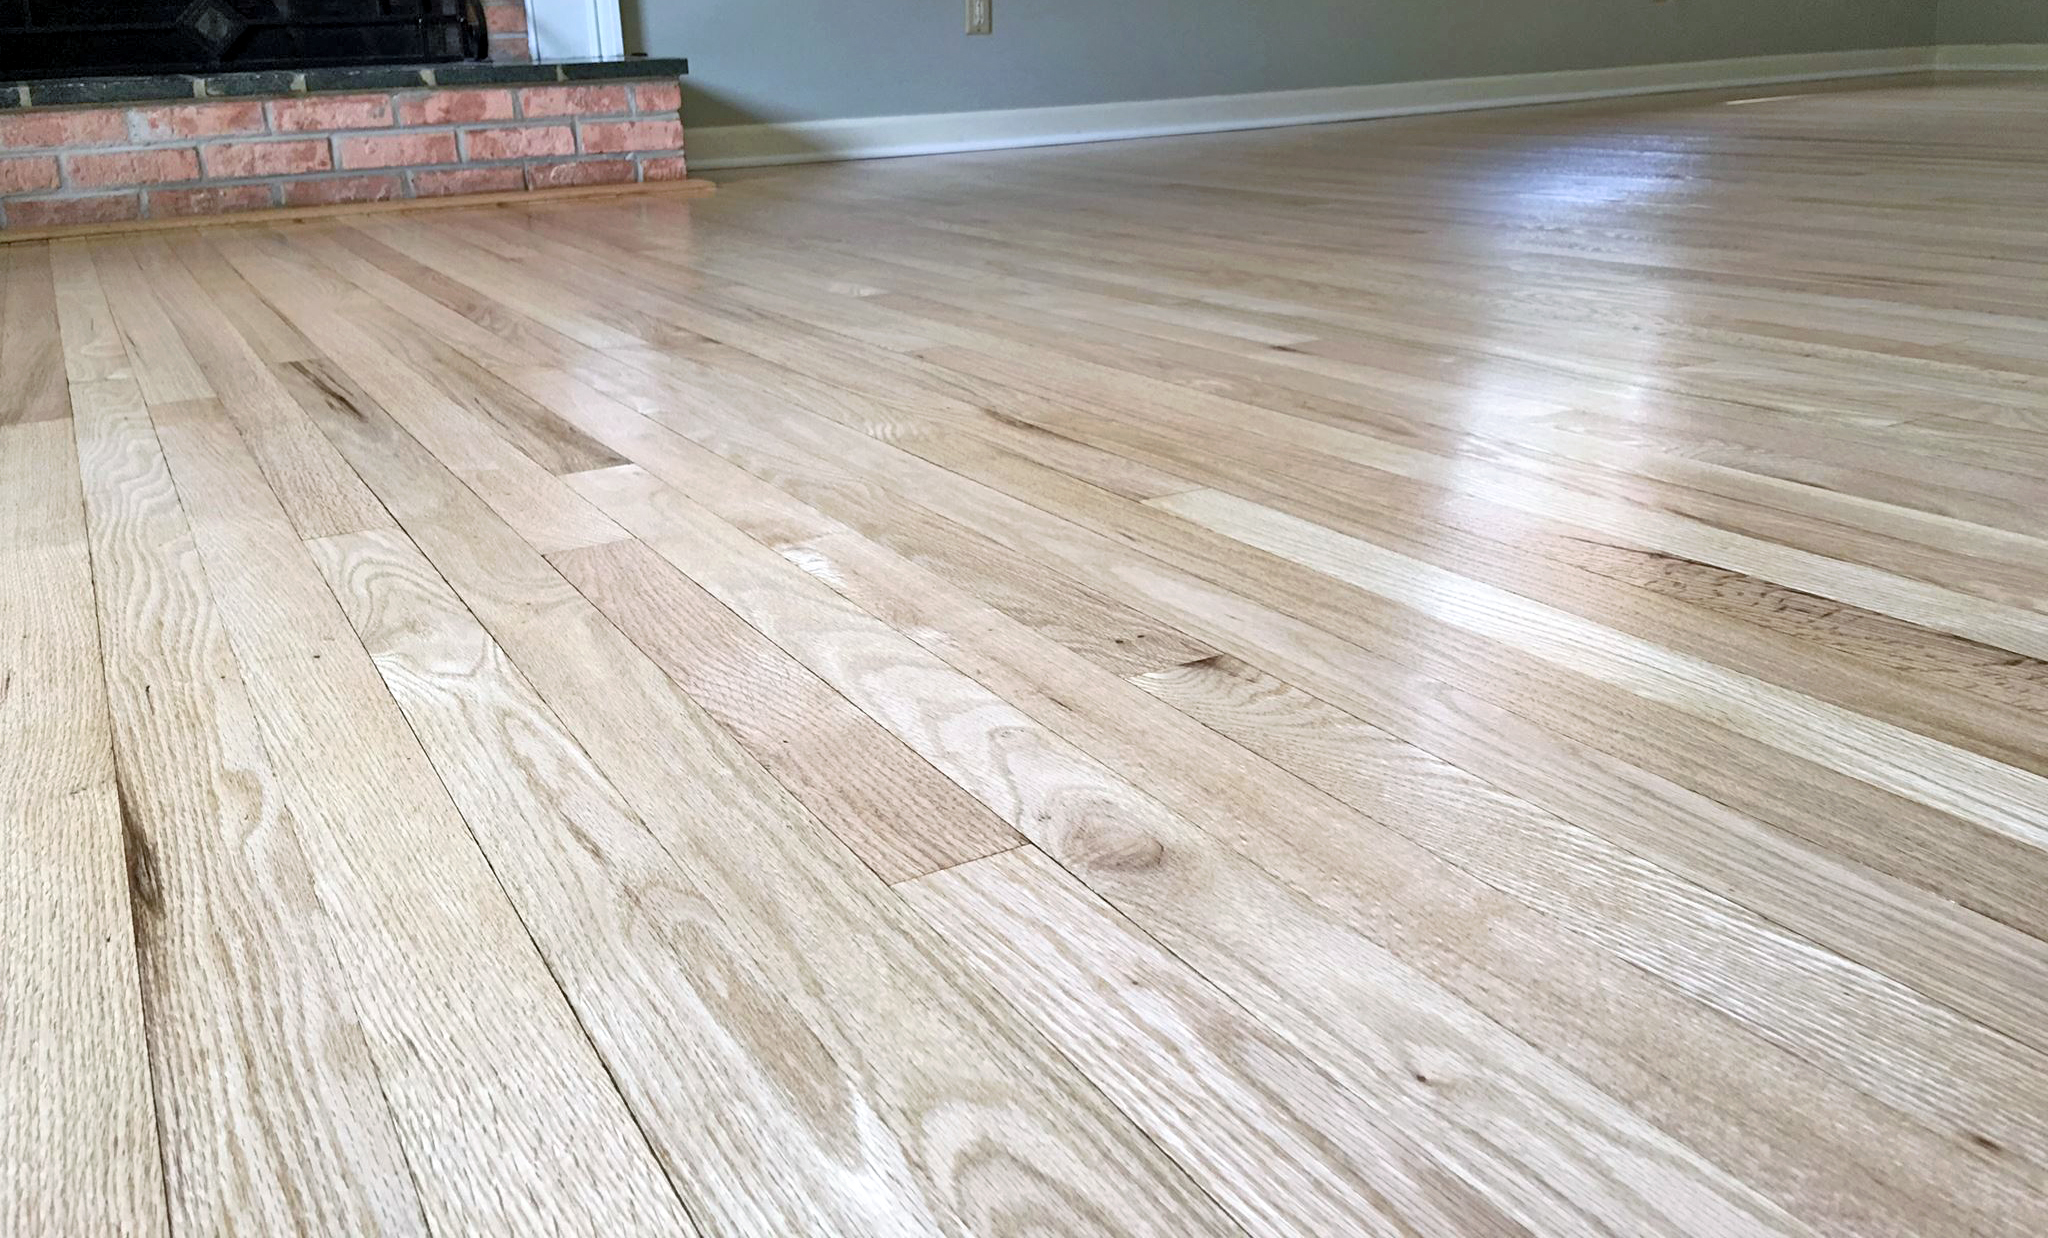 Red Oak Floors Refinished With Pro Image Satin General